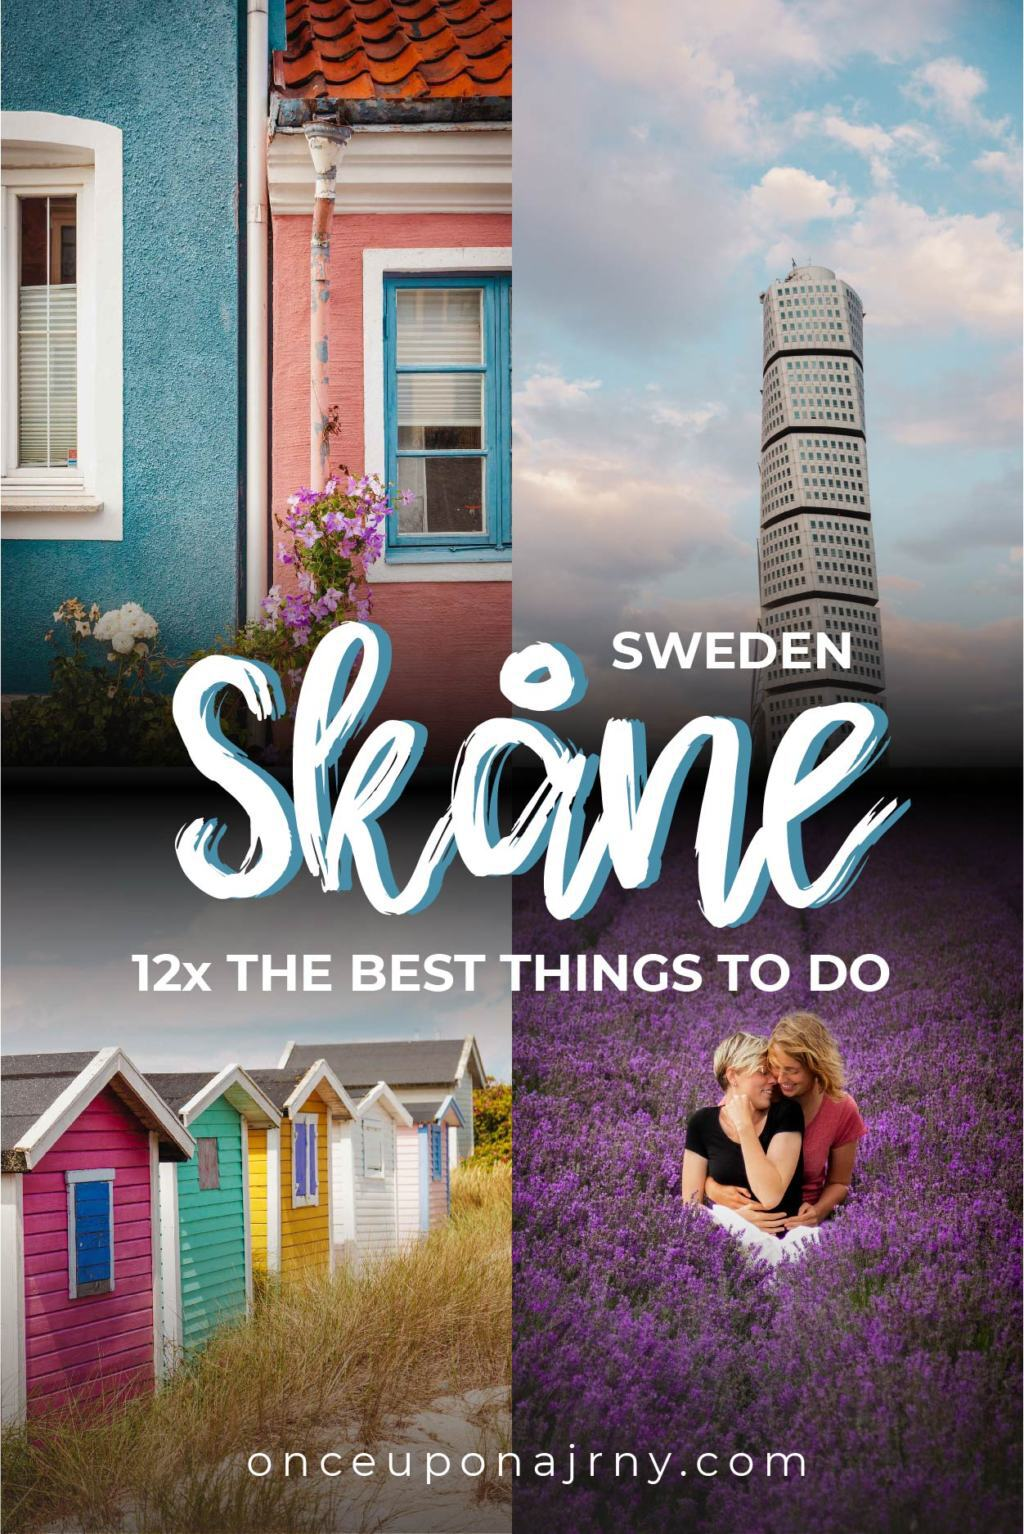 12x The Best Things to Do in Skåne Sweden